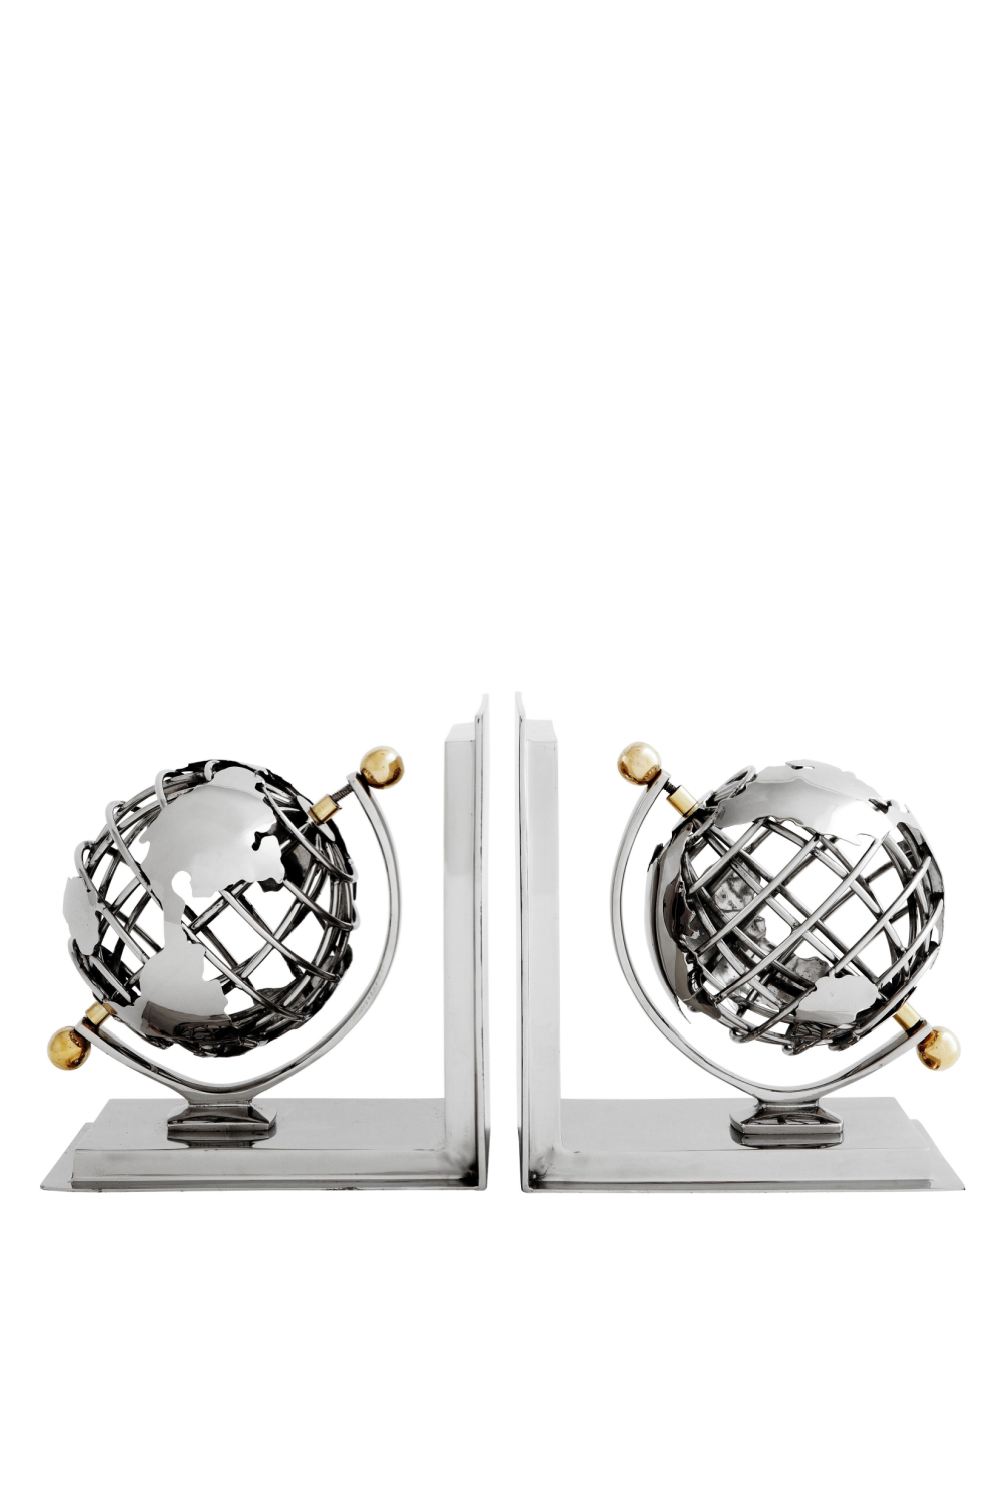 Globe Bookends set of 2 | Eichholtz | #1 Eichholtz Online Retailer